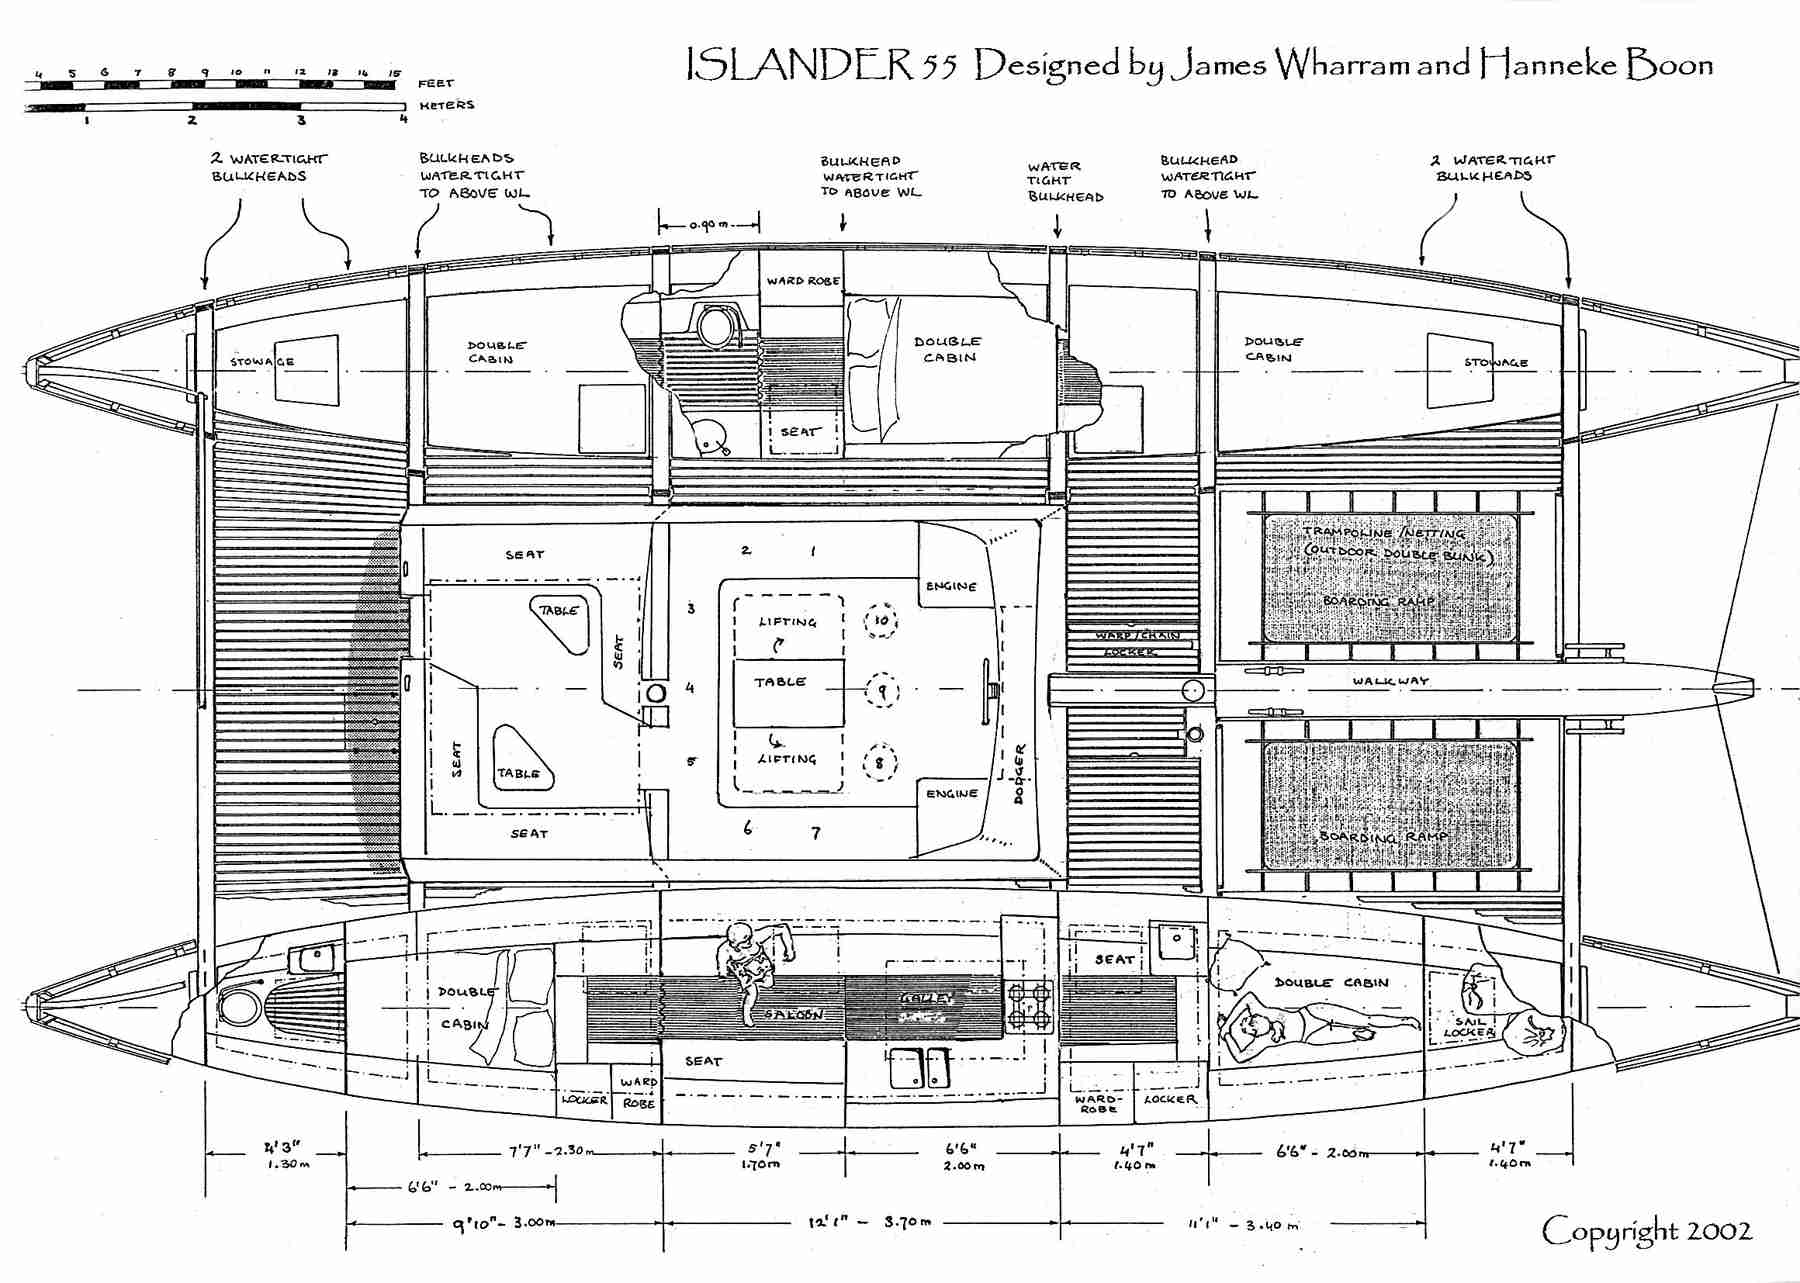 Islander 55 - Charter layout drawing